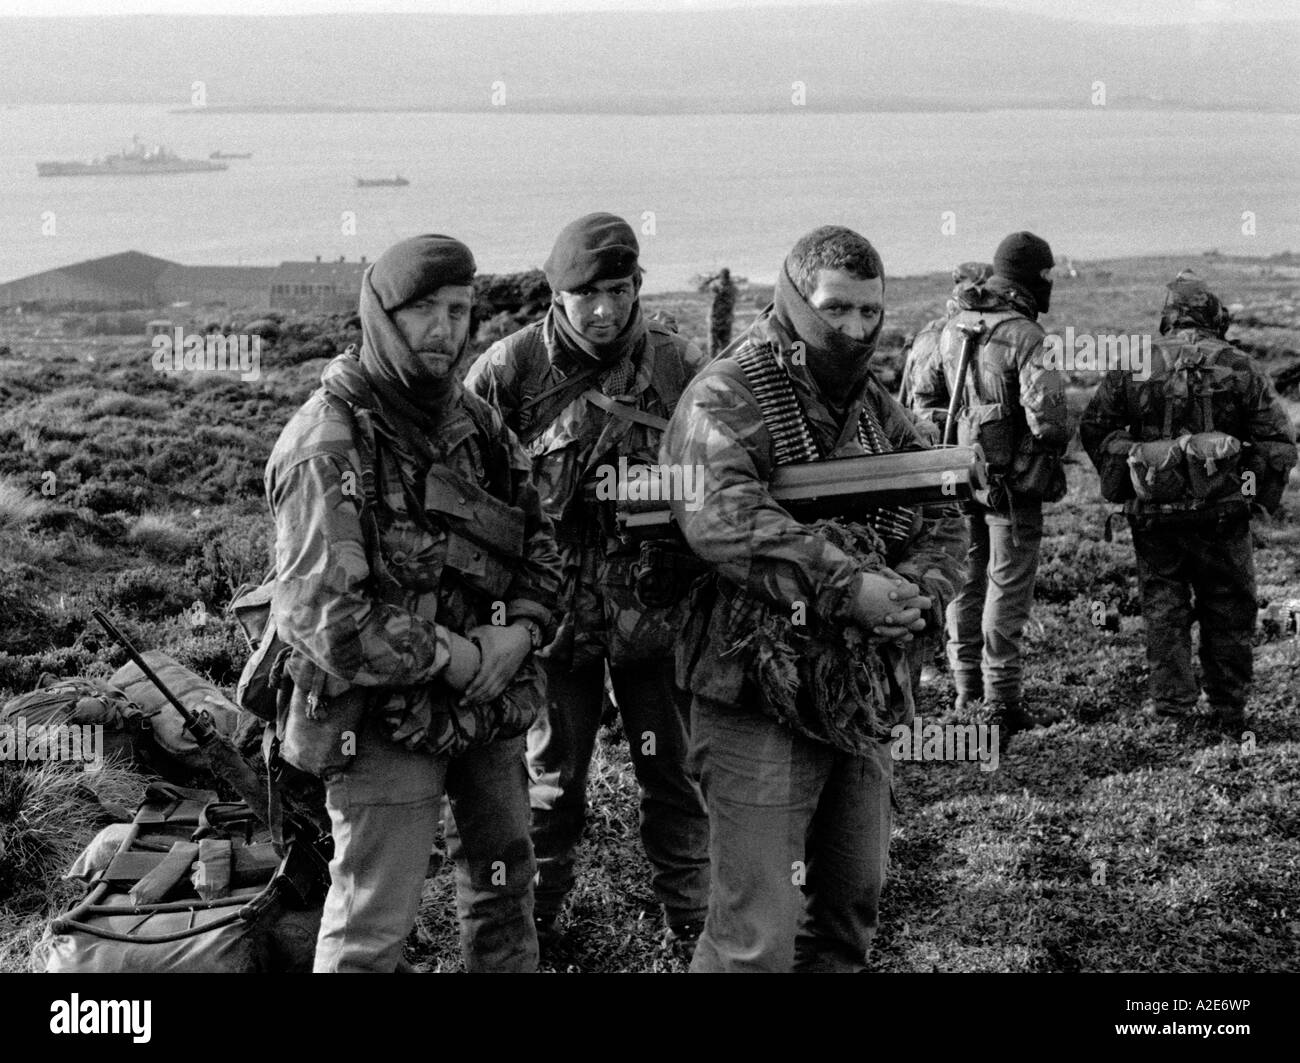 Royal Marines wait to go on patrol from Ajax Bay during the Falklands Conflict in 1982 - Stock Image